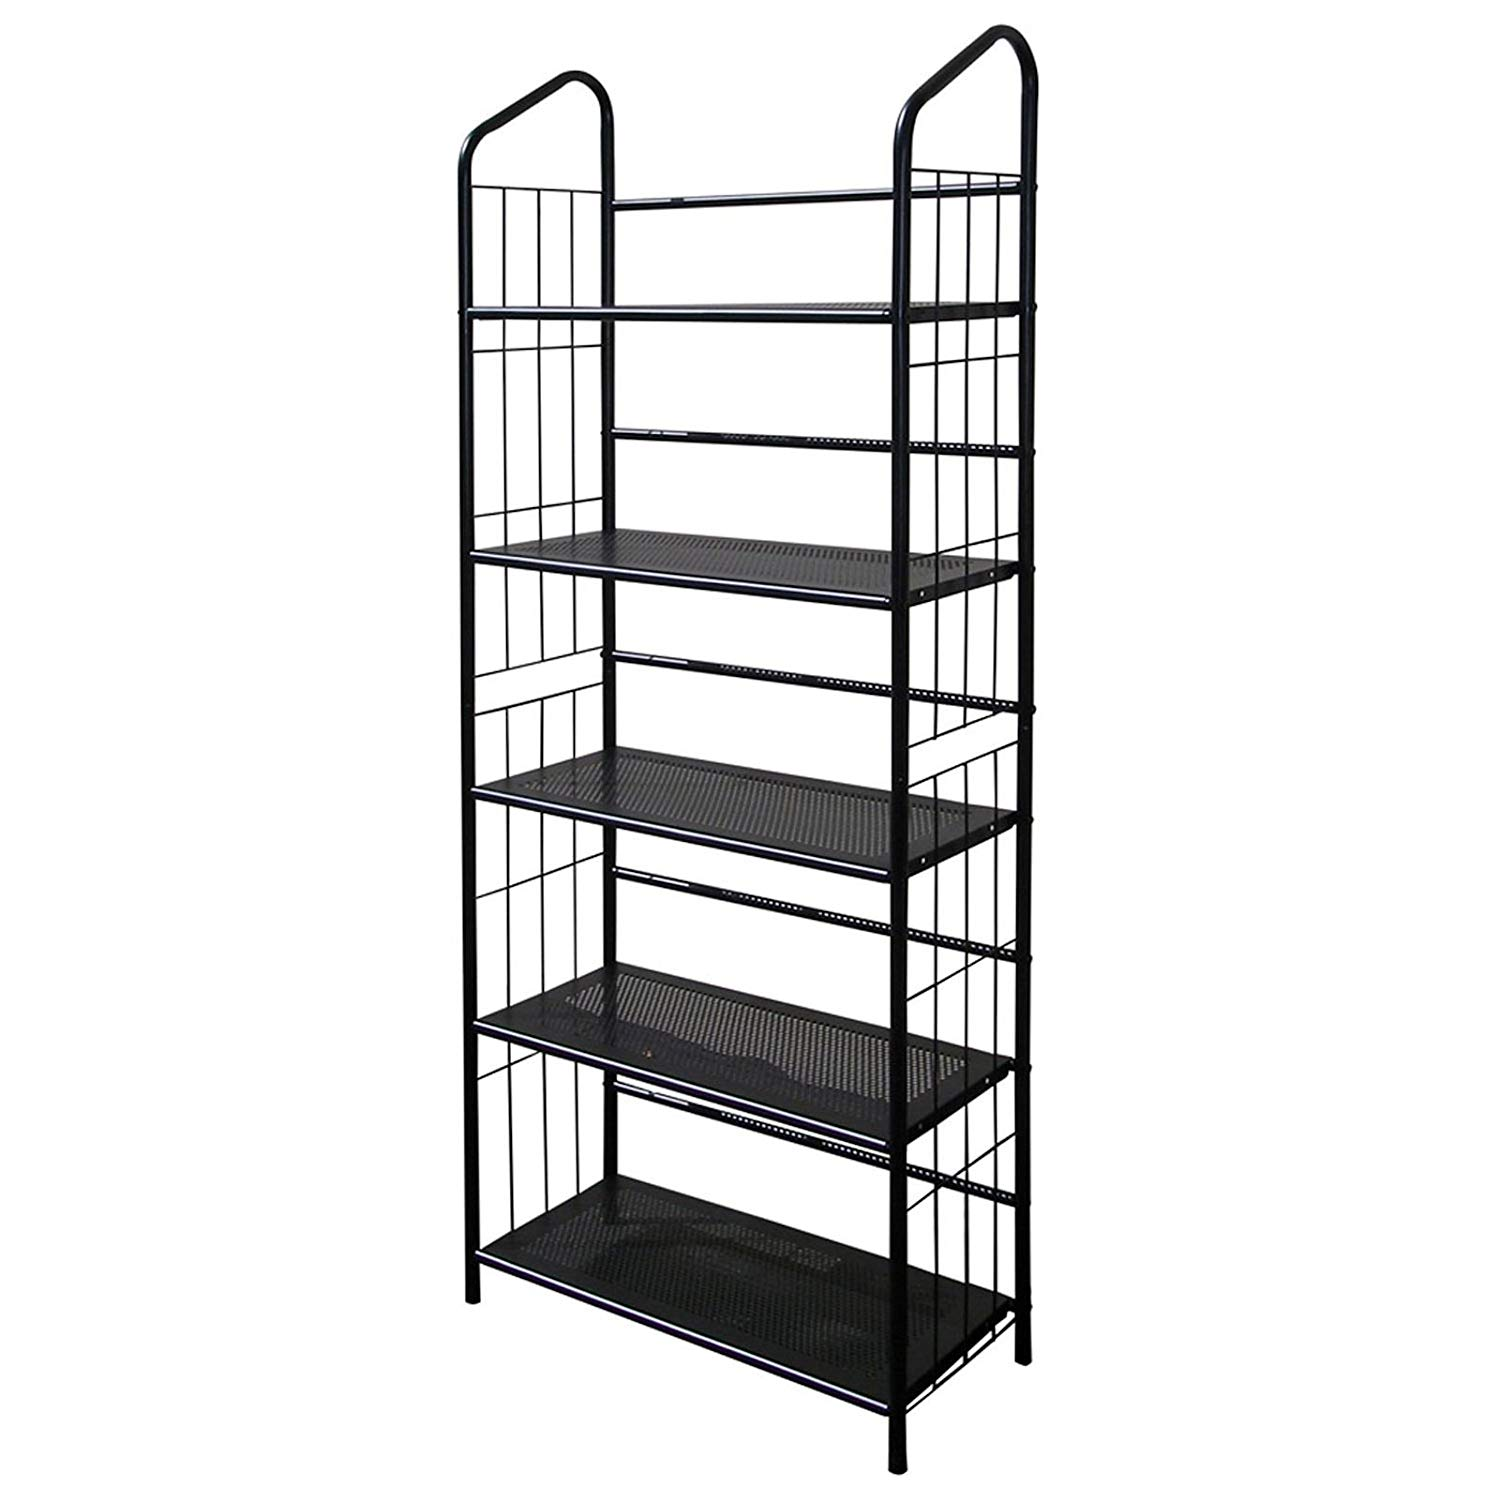 Metal Utility Bookcase Bookshelf Rack Black Finish 13 by 26 by 37